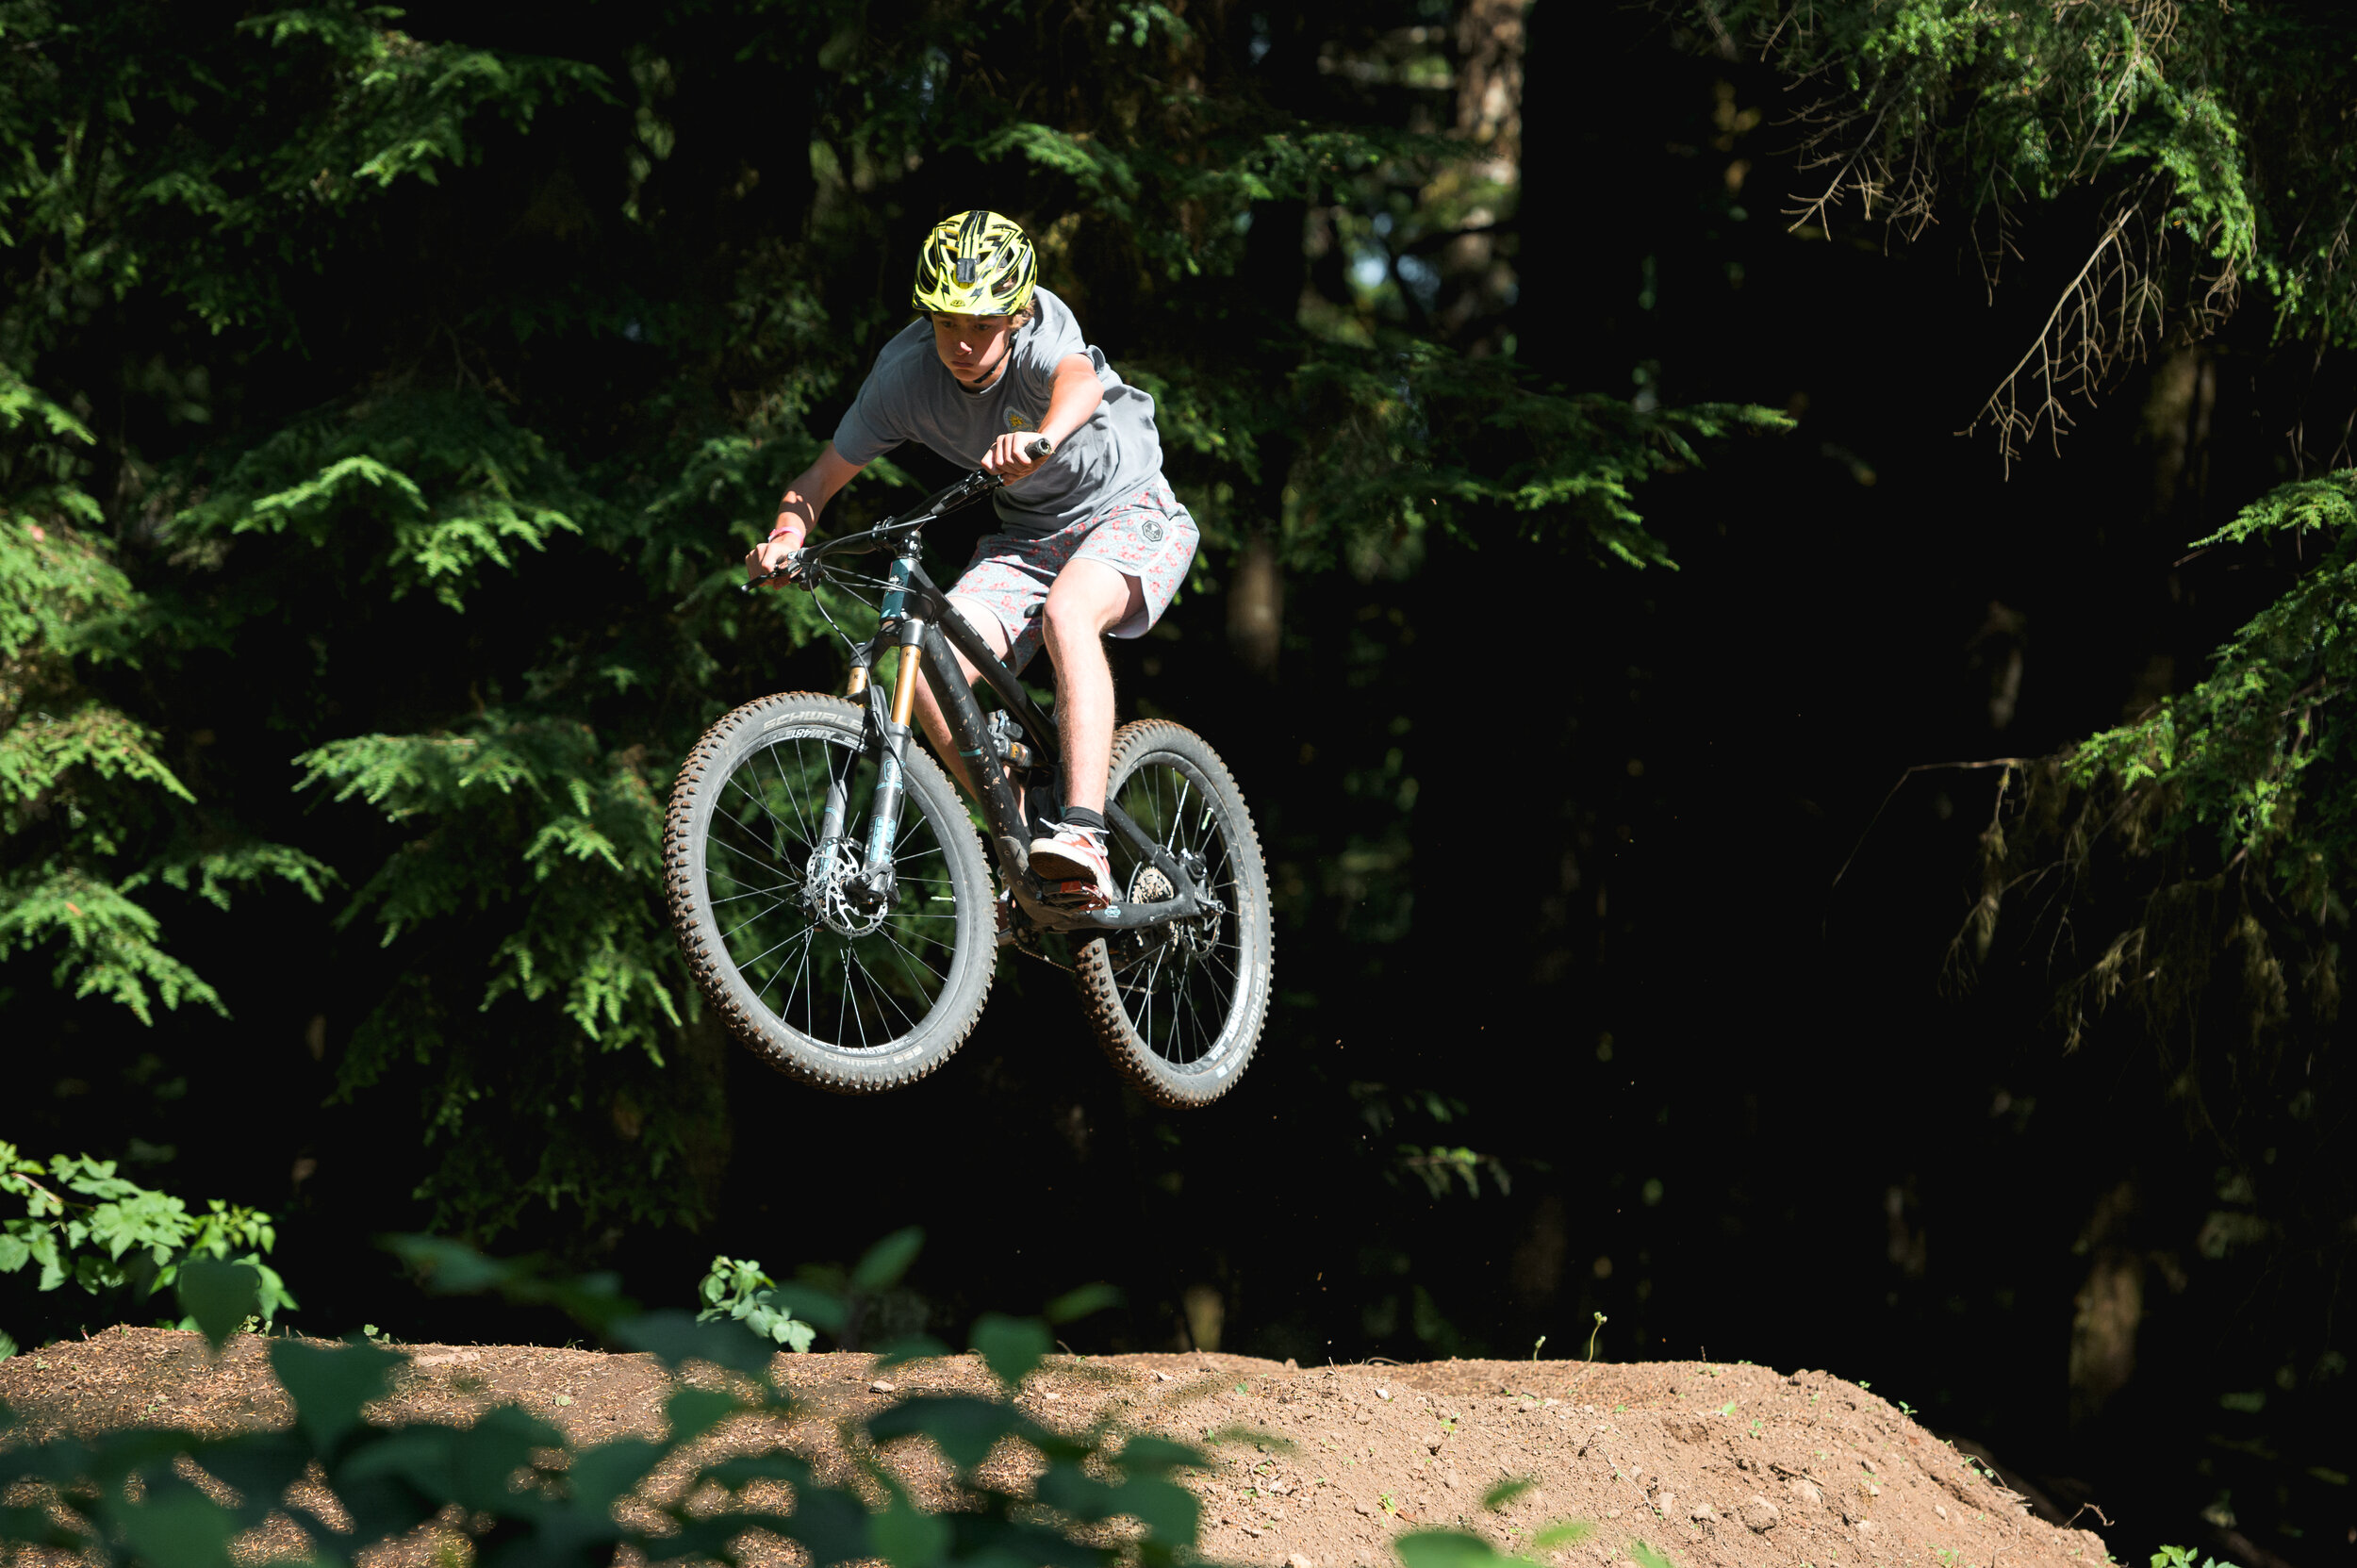 MOUNTAIN BIKING_JACOB DUBE (@JAKE.NOMIDDLENAME.DUBE)-9.jpg